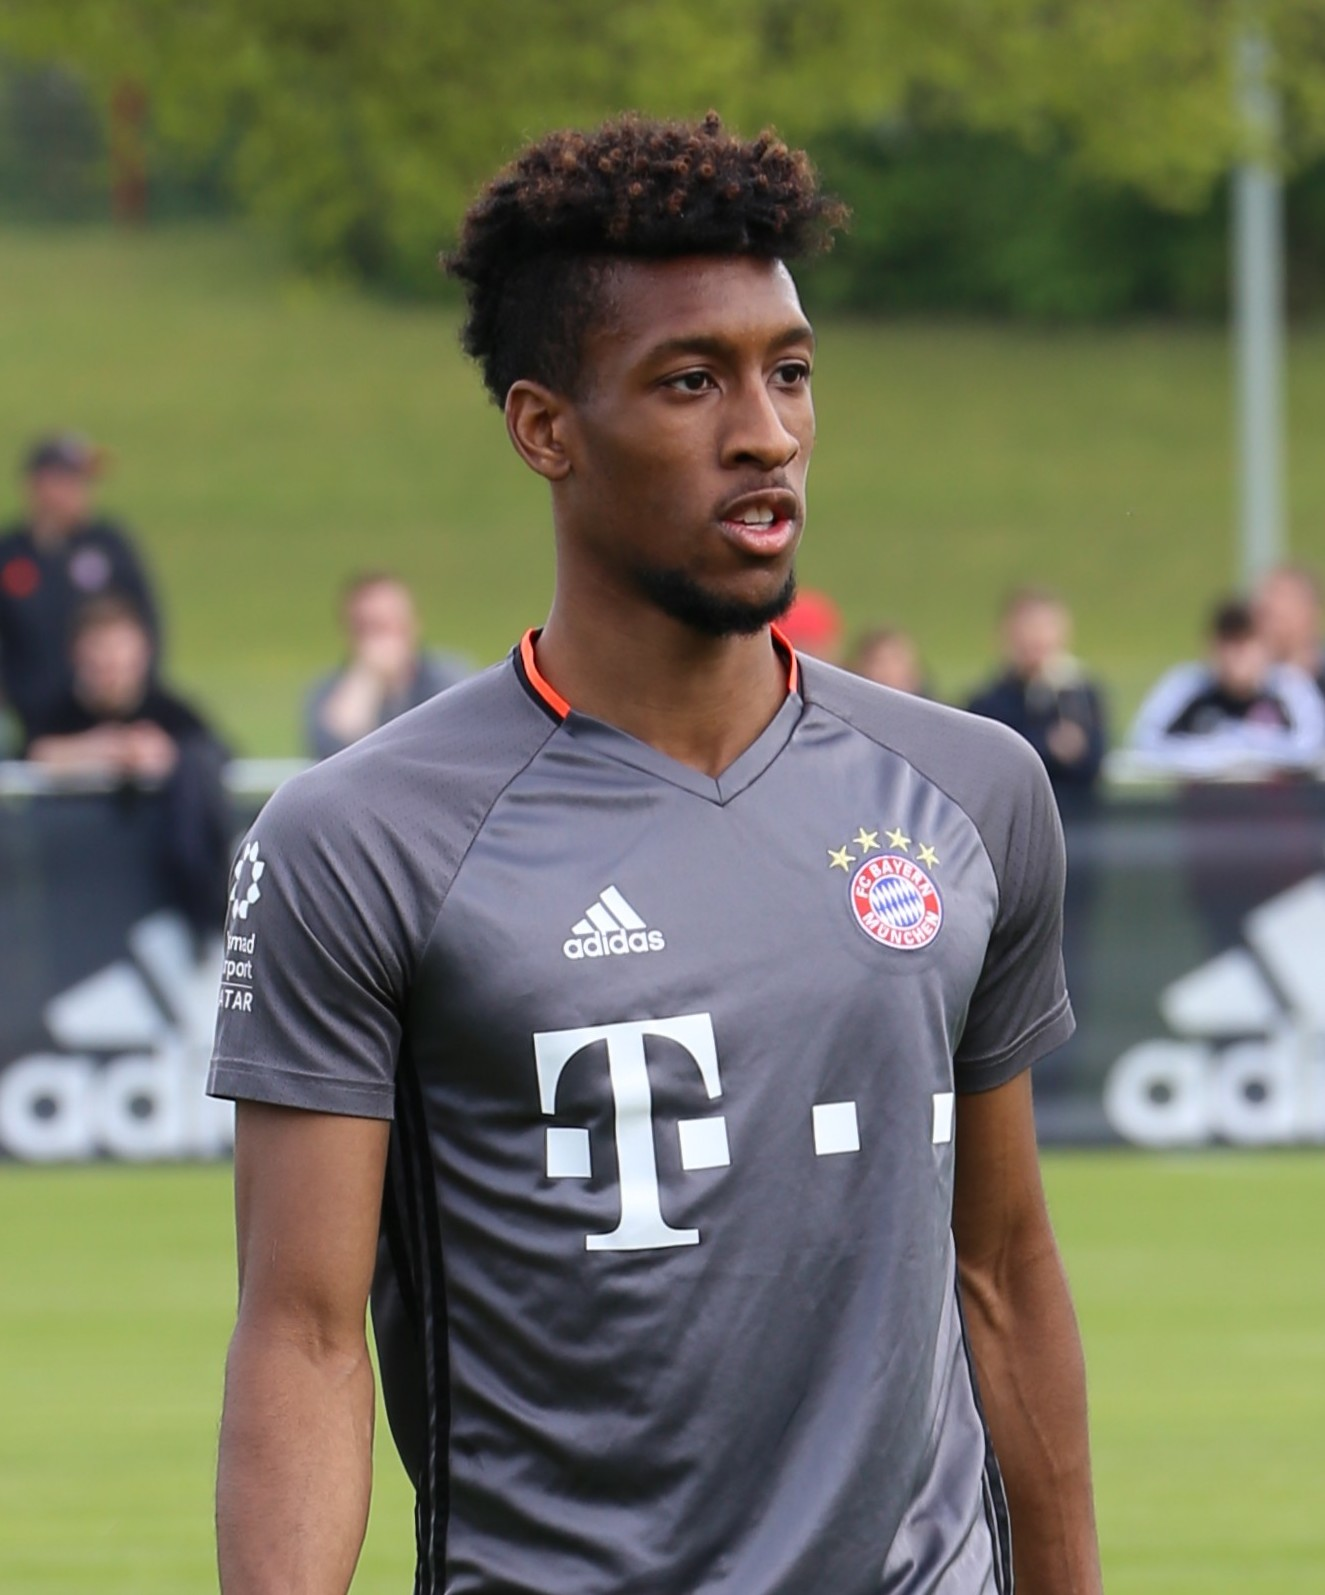 The 23-year old son of father (?) and mother(?) Kingsley Coman in 2019 photo. Kingsley Coman earned a 0.19 million dollar salary - leaving the net worth at 0.76 million in 2019